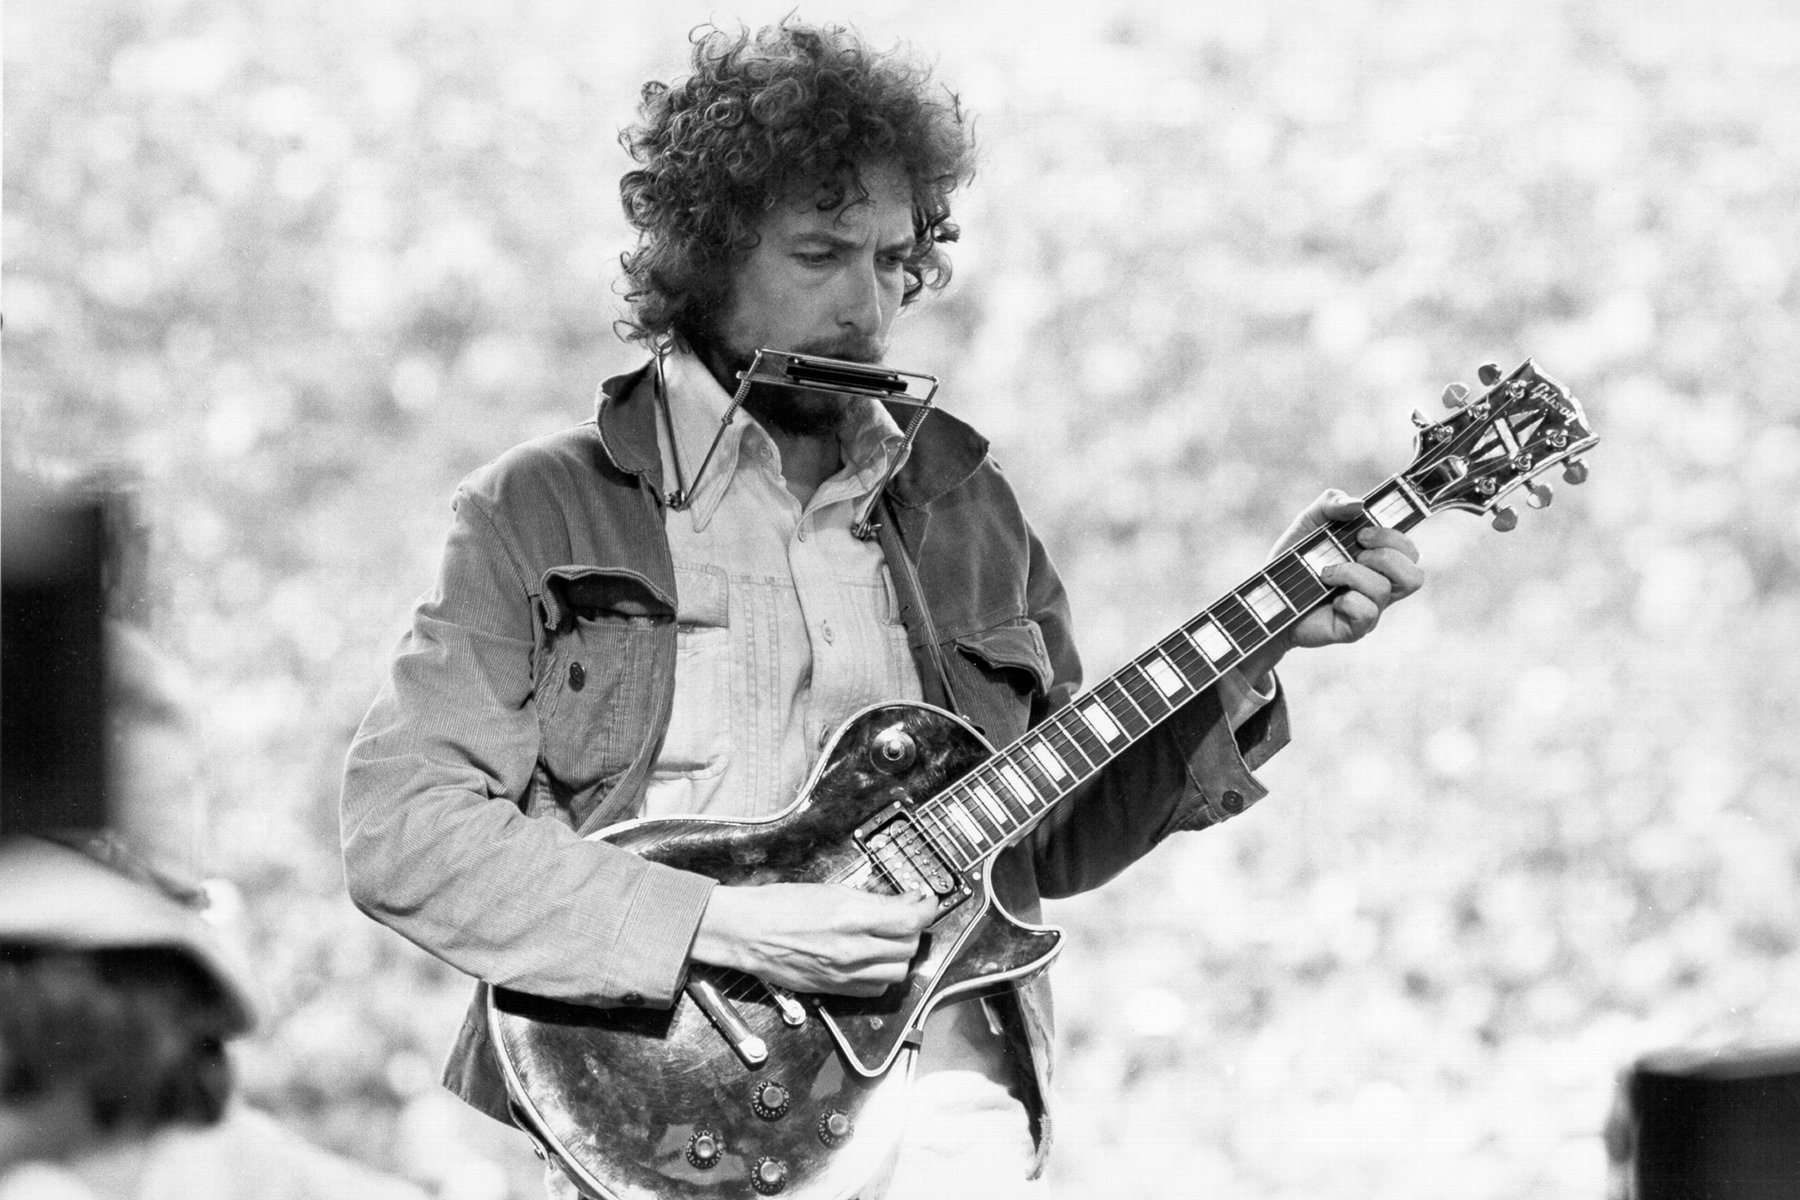 500 Greatest Albums: Inside 'Blood on the Tracks,' Bob Dylan's Shapeshifting Seventies Masterpiece